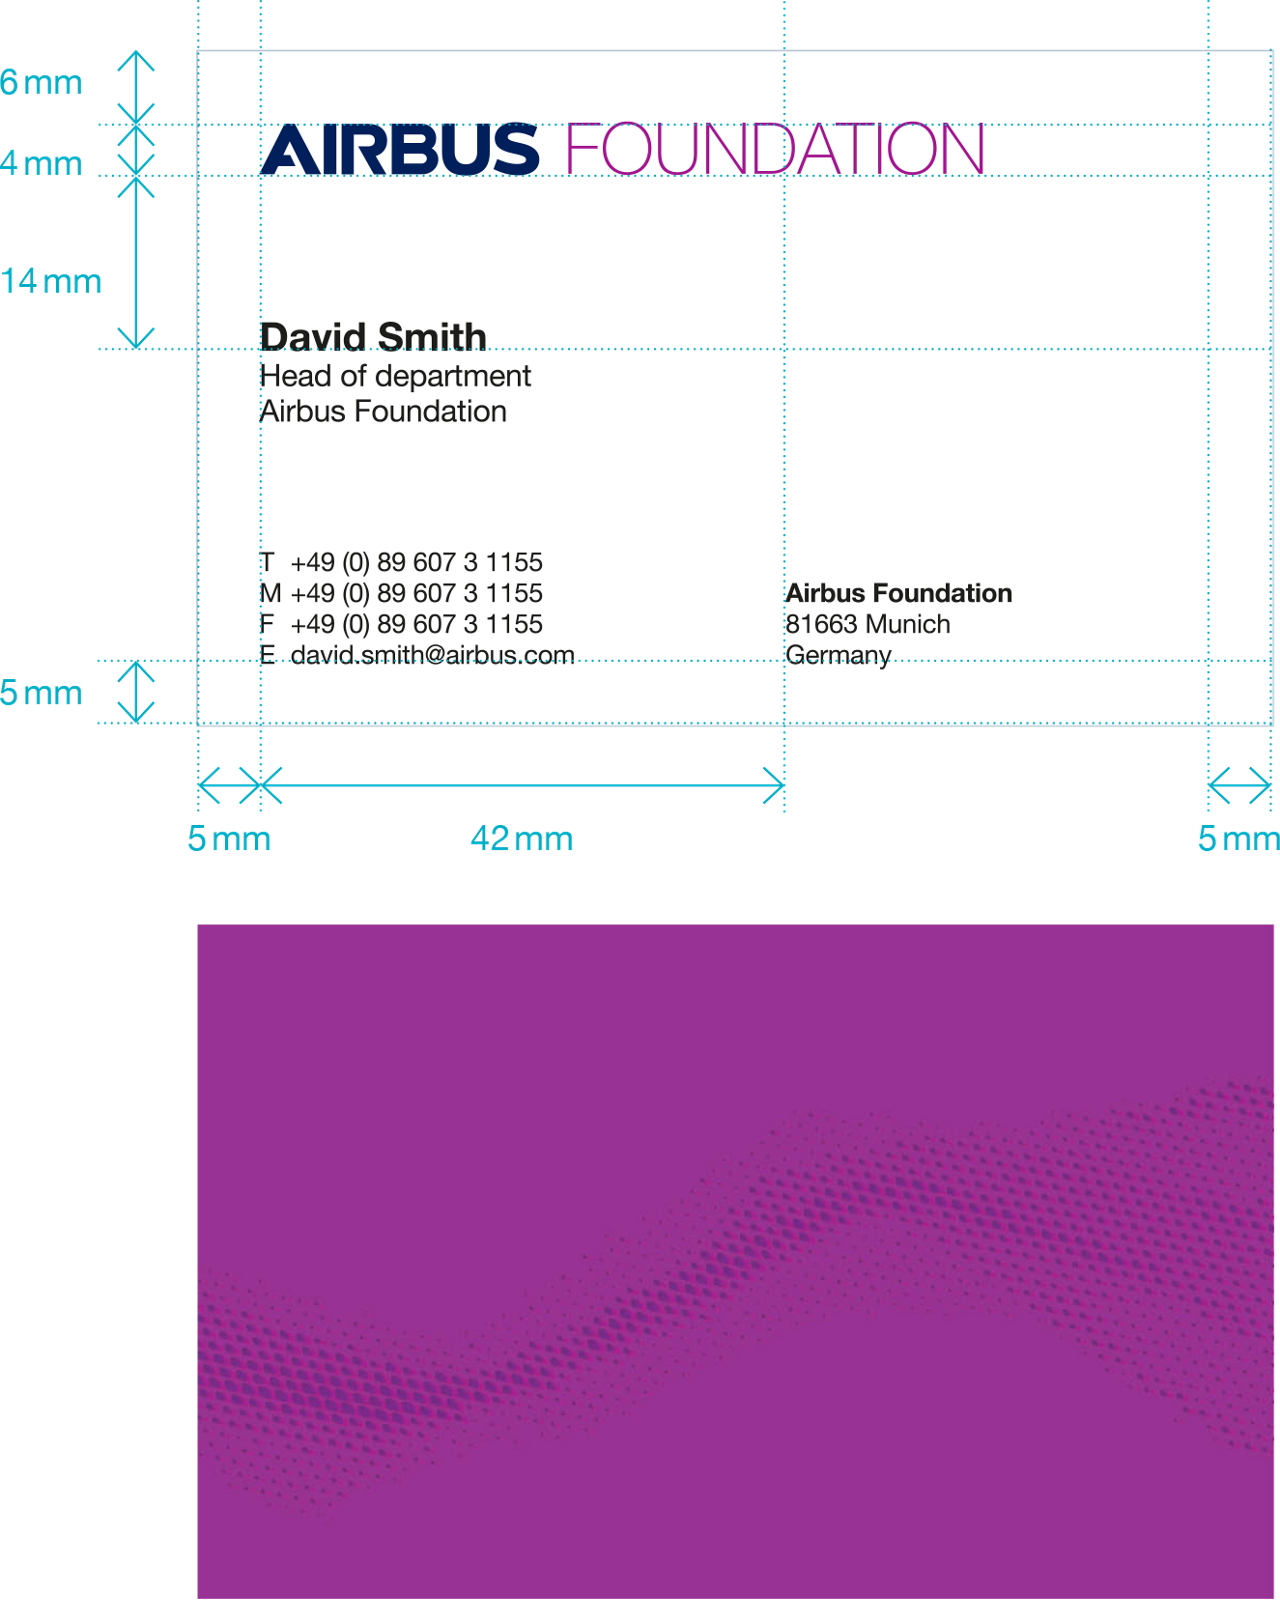 Airbus Foundation Stationery 2